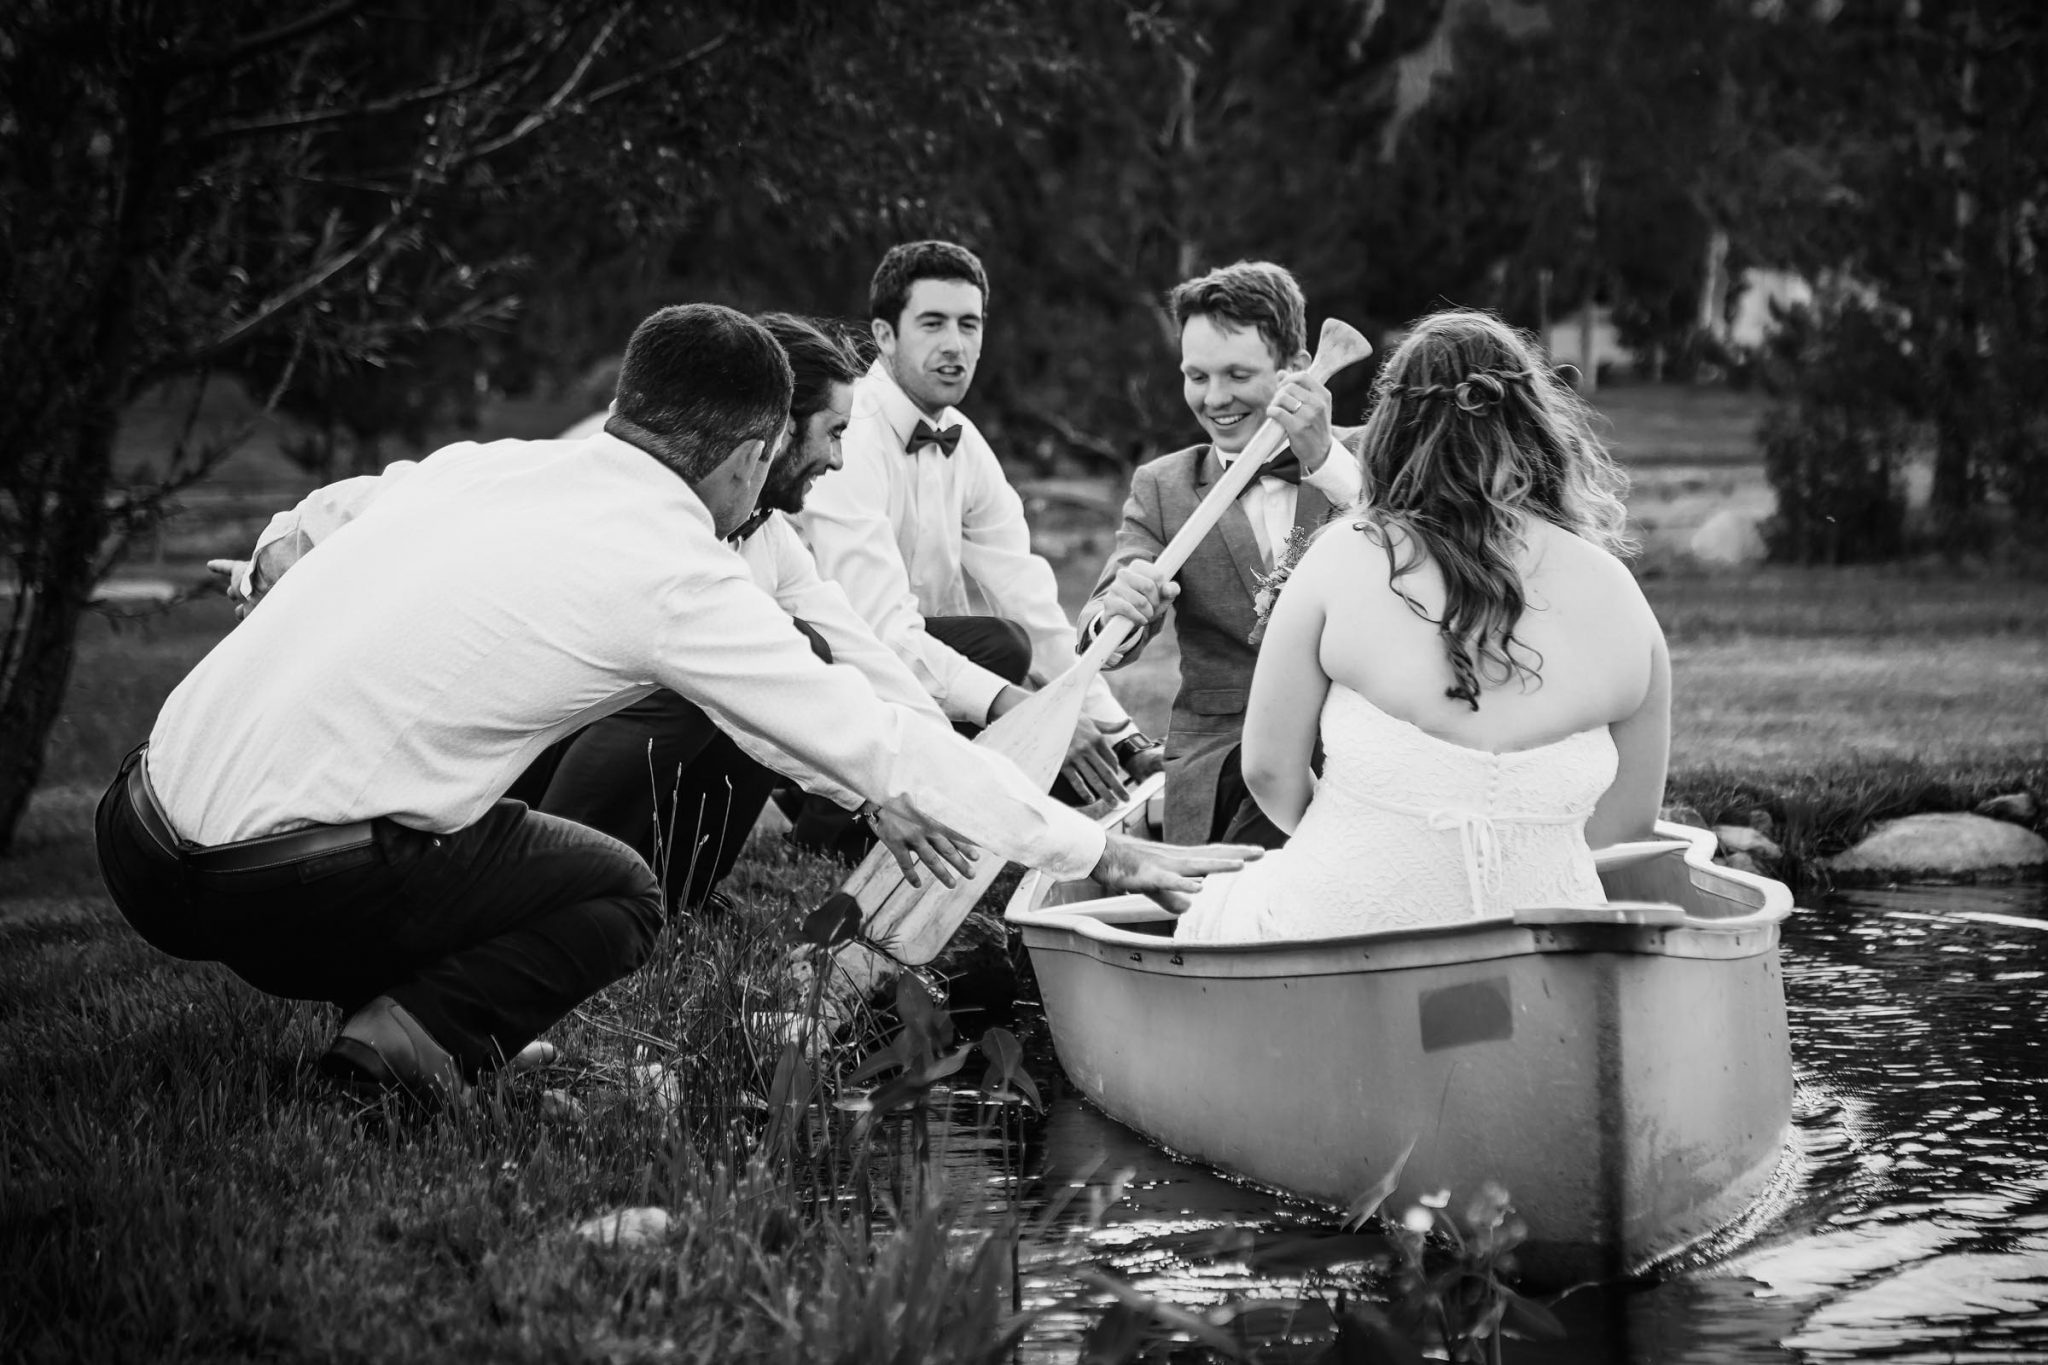 Gardnerville wedding exit on a canoe with the help of groomsmen